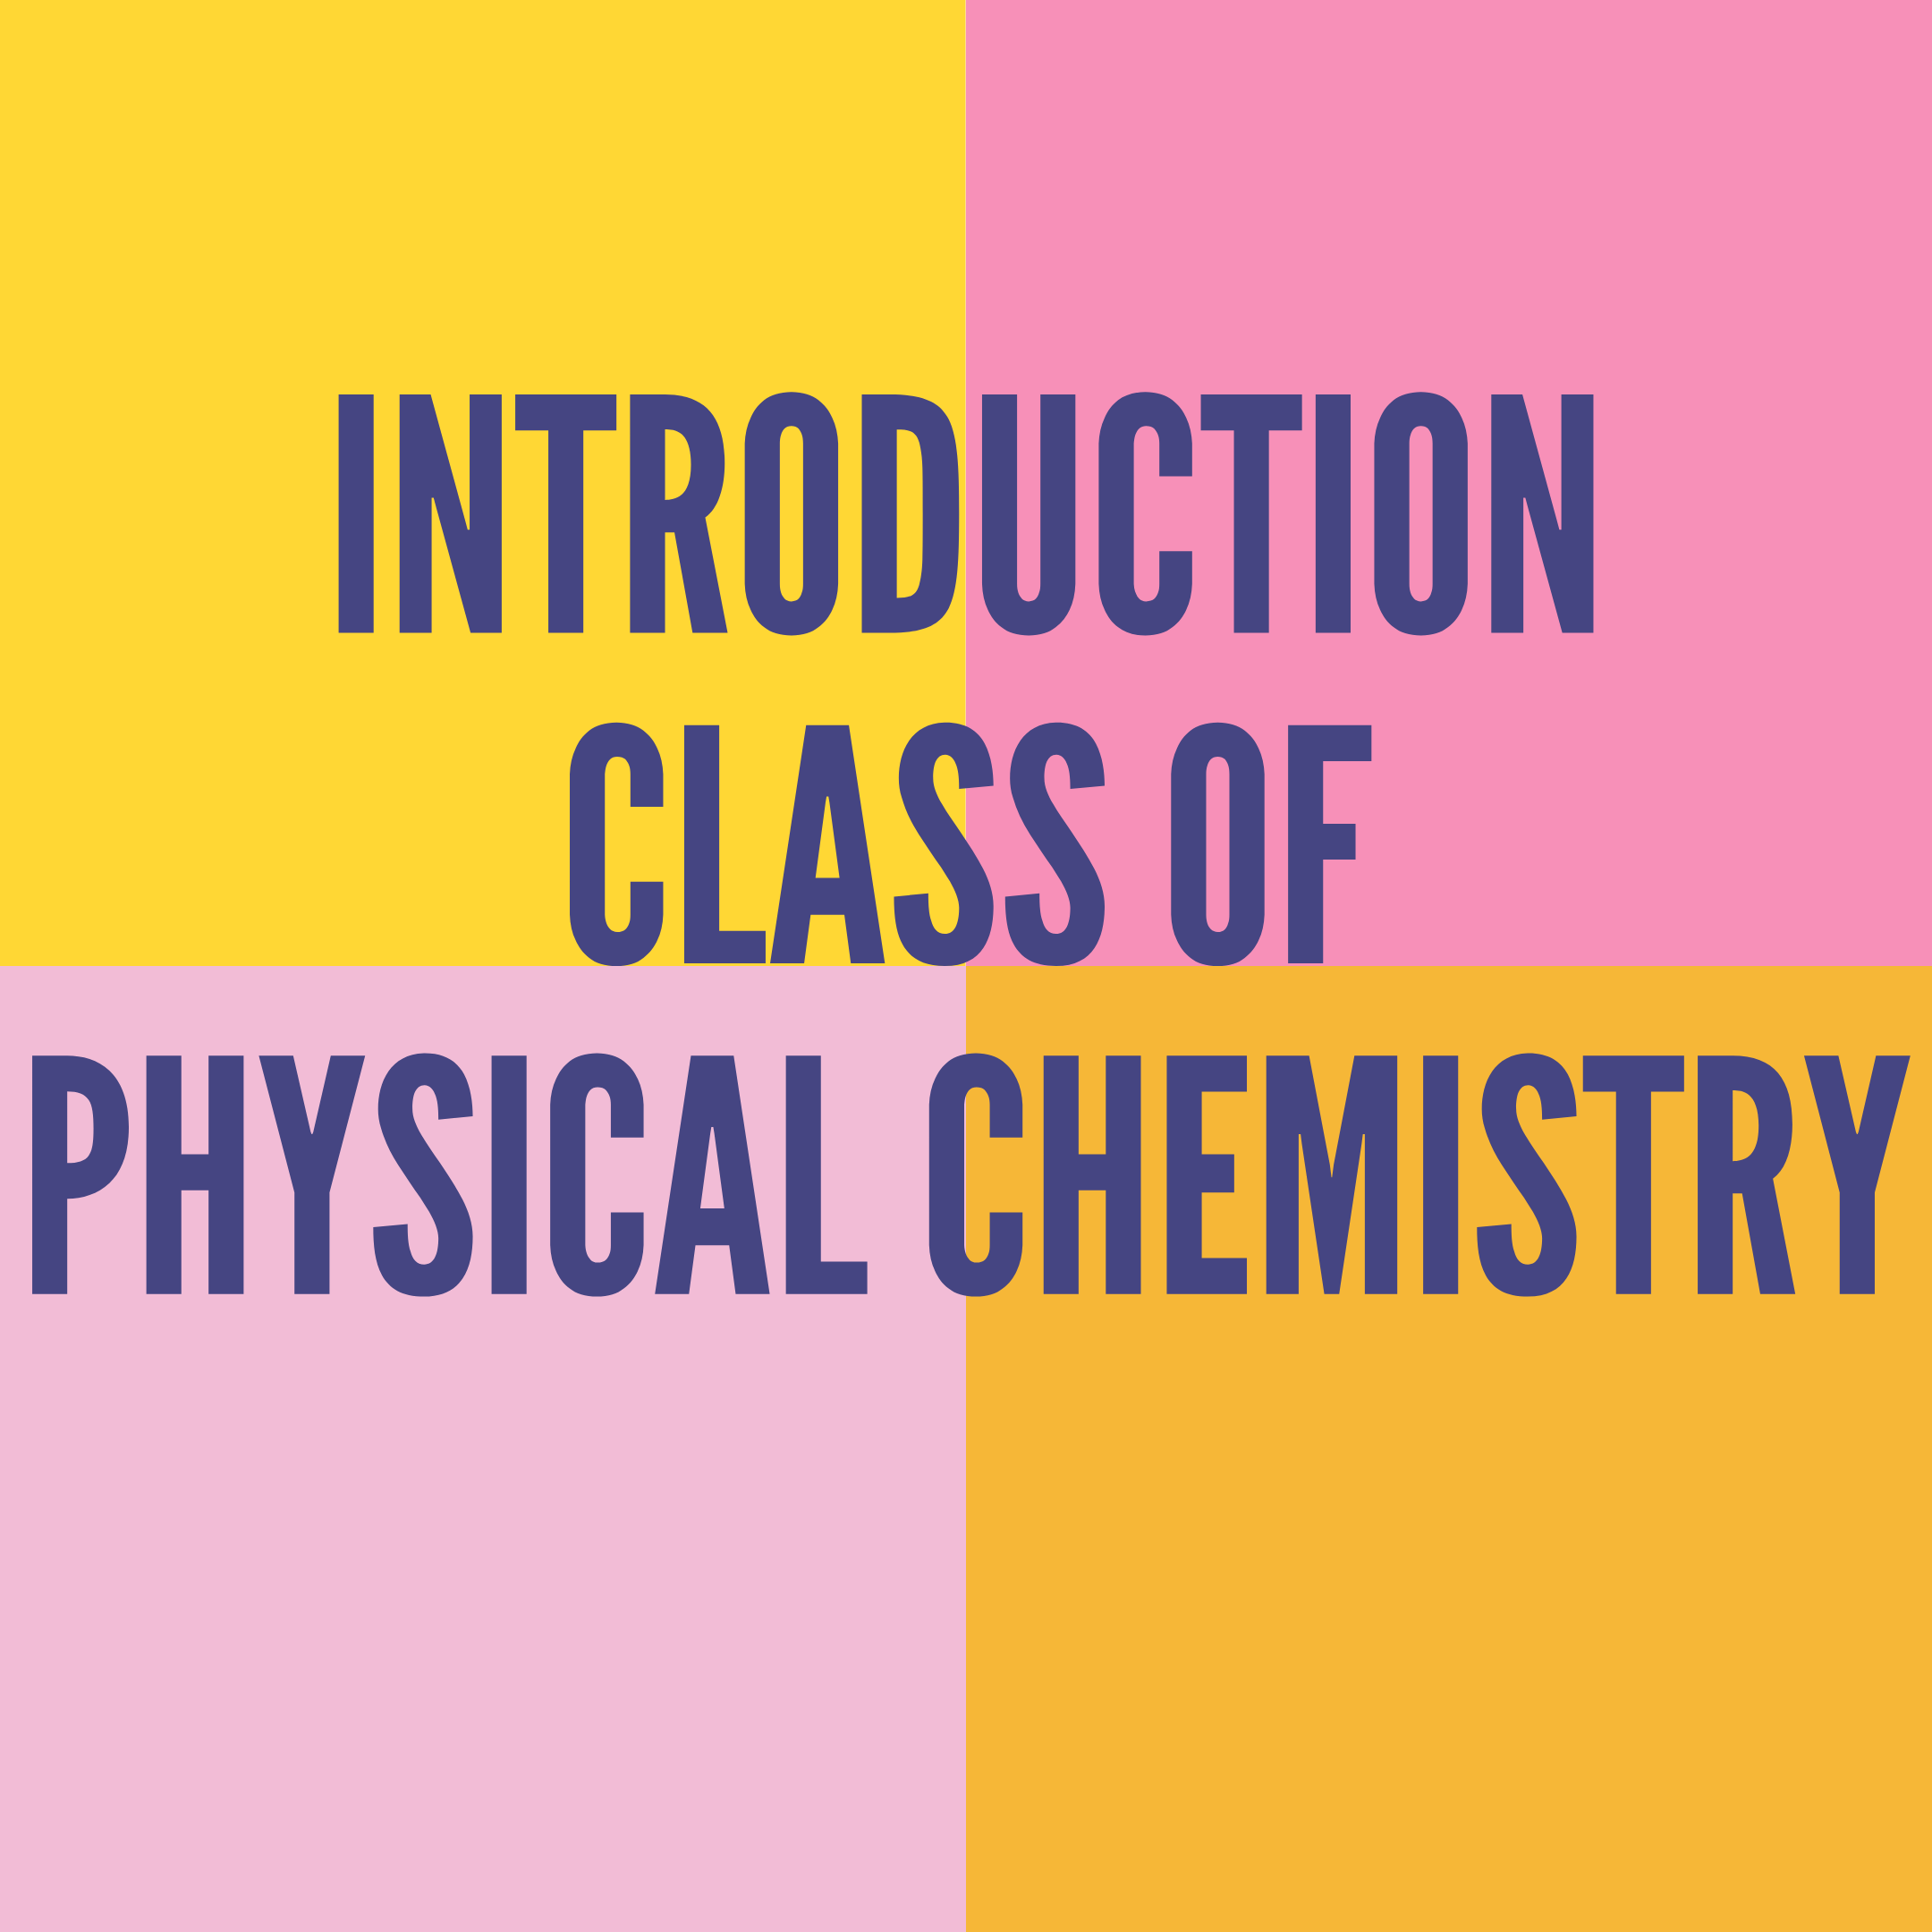 INTRODUCTION OF PHYSICAL CHEMISTRY